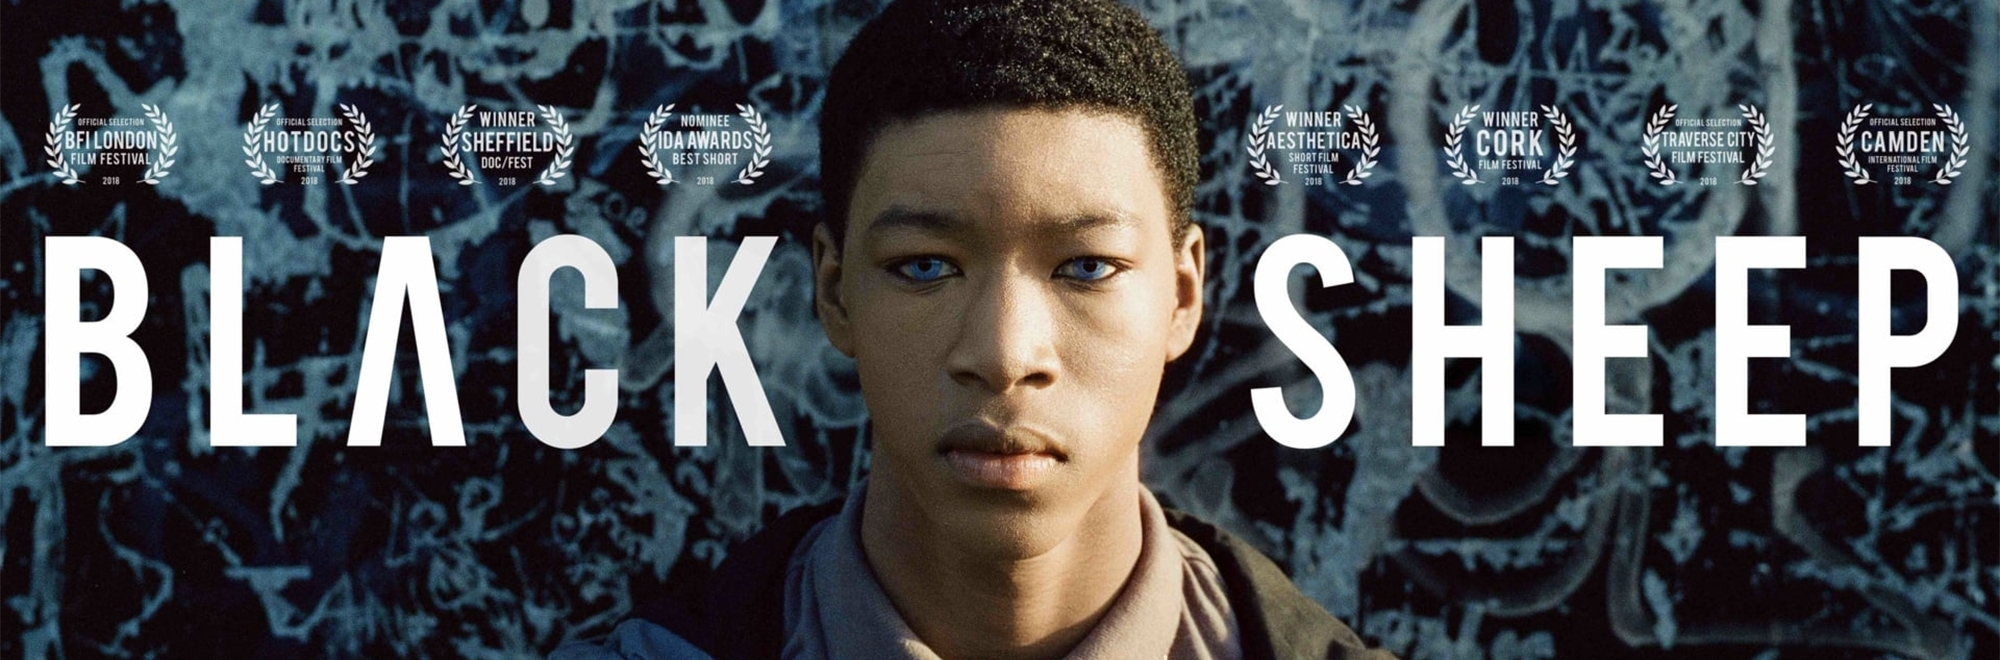 Oscar nominated, this film tells the story of Cornelius Walker whose life changed forever after the murder of Damilola Taylor